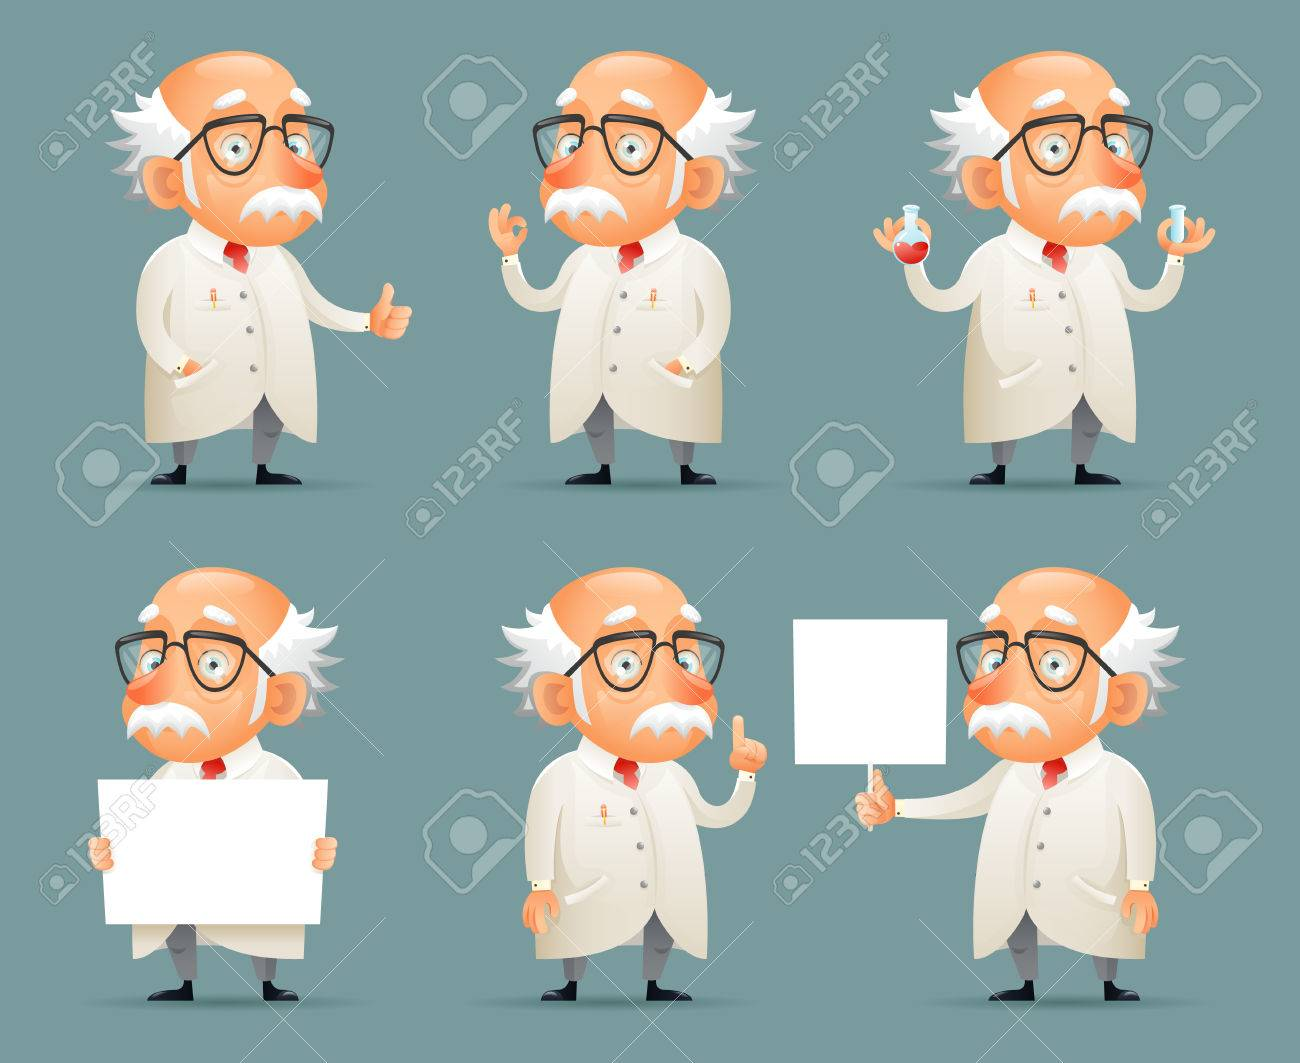 Old Scientist Character Icons Set Retro Cartoon Design Mobile Game Vector Illustration Banque d'images - 74655387